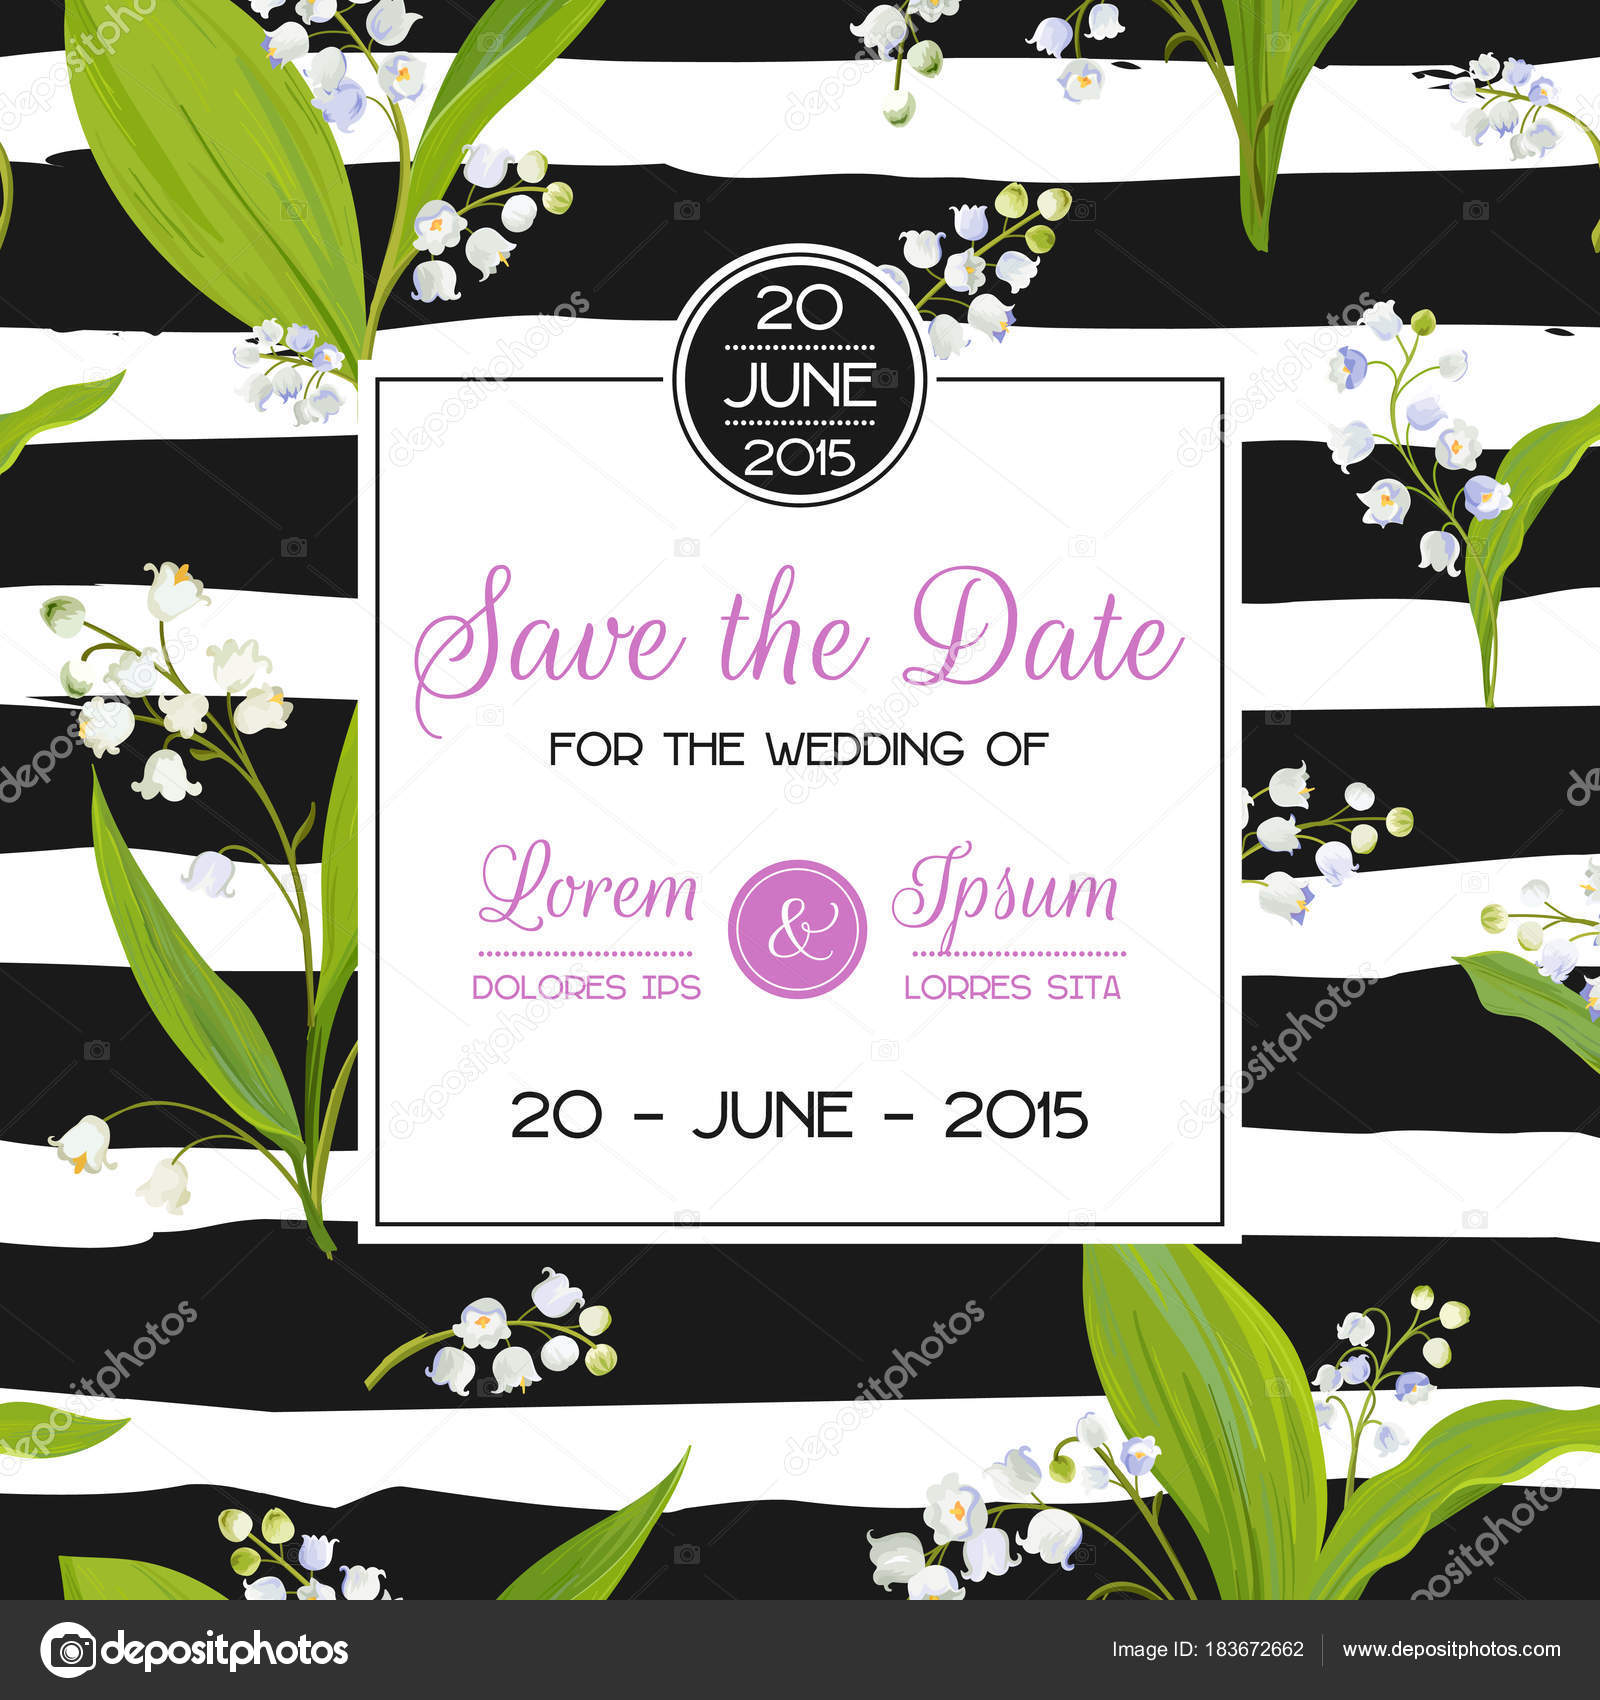 Save the date card with spring lily of the valley flowers wedding save the date card with spring lily of the valley flowers wedding invitation anniversary izmirmasajfo